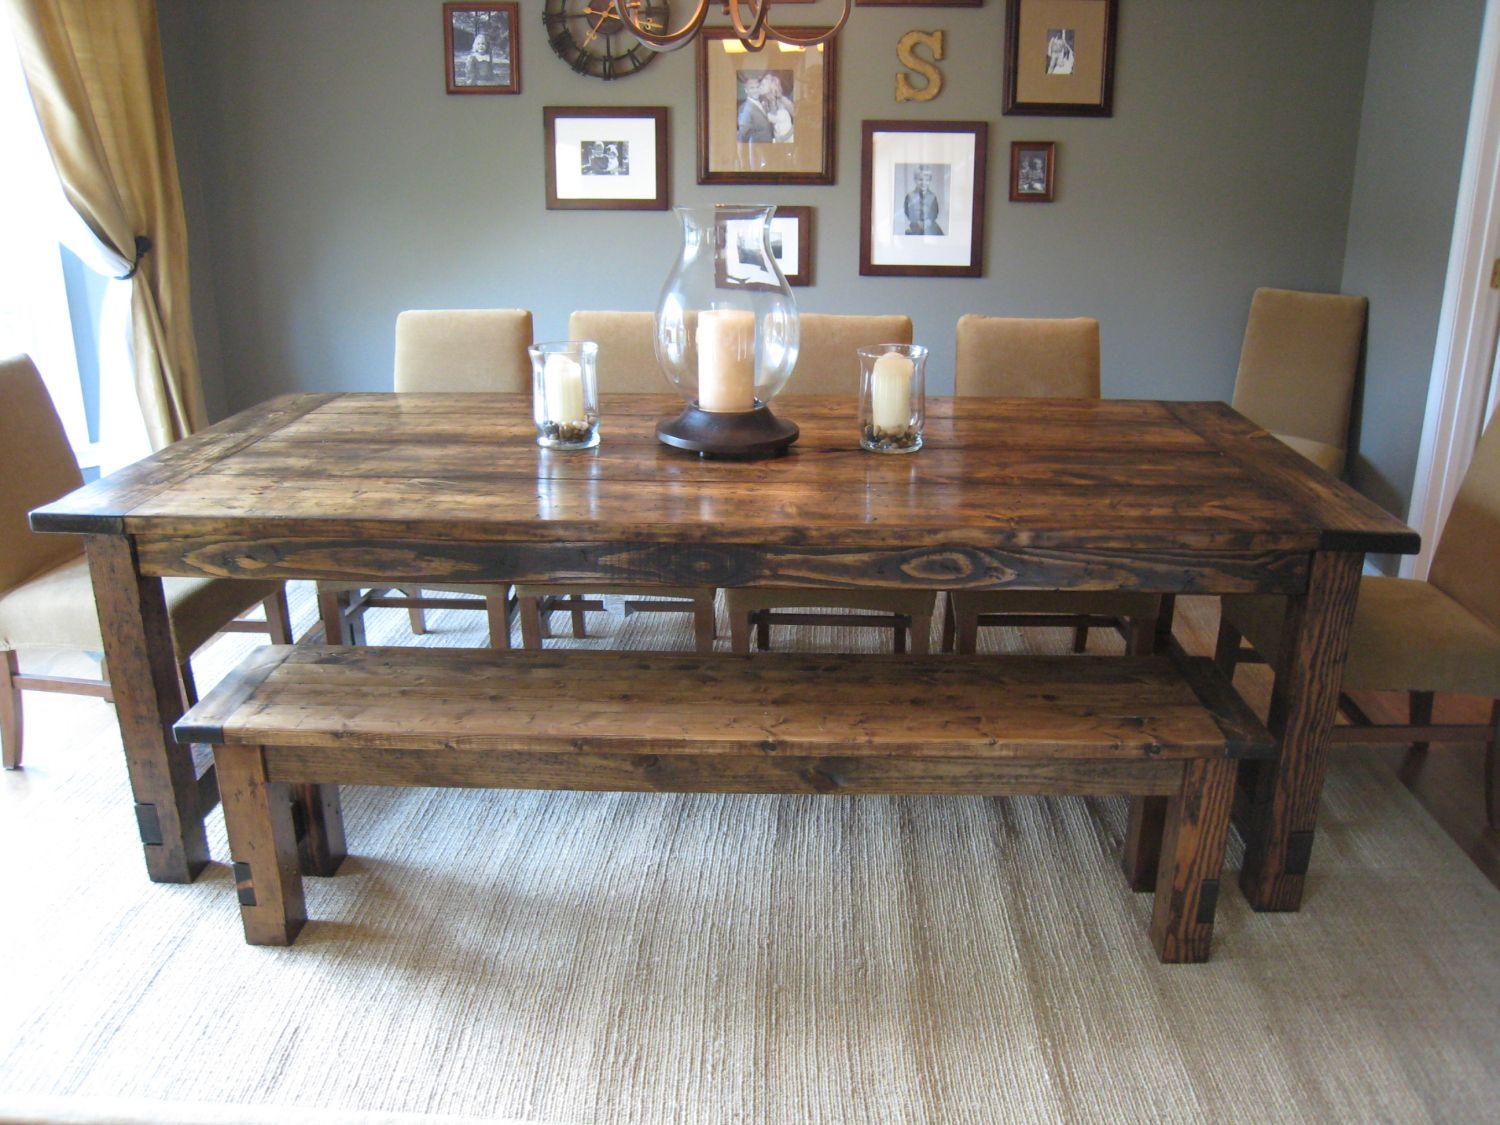 country style kitchen table with bench - kitchen backsplash design